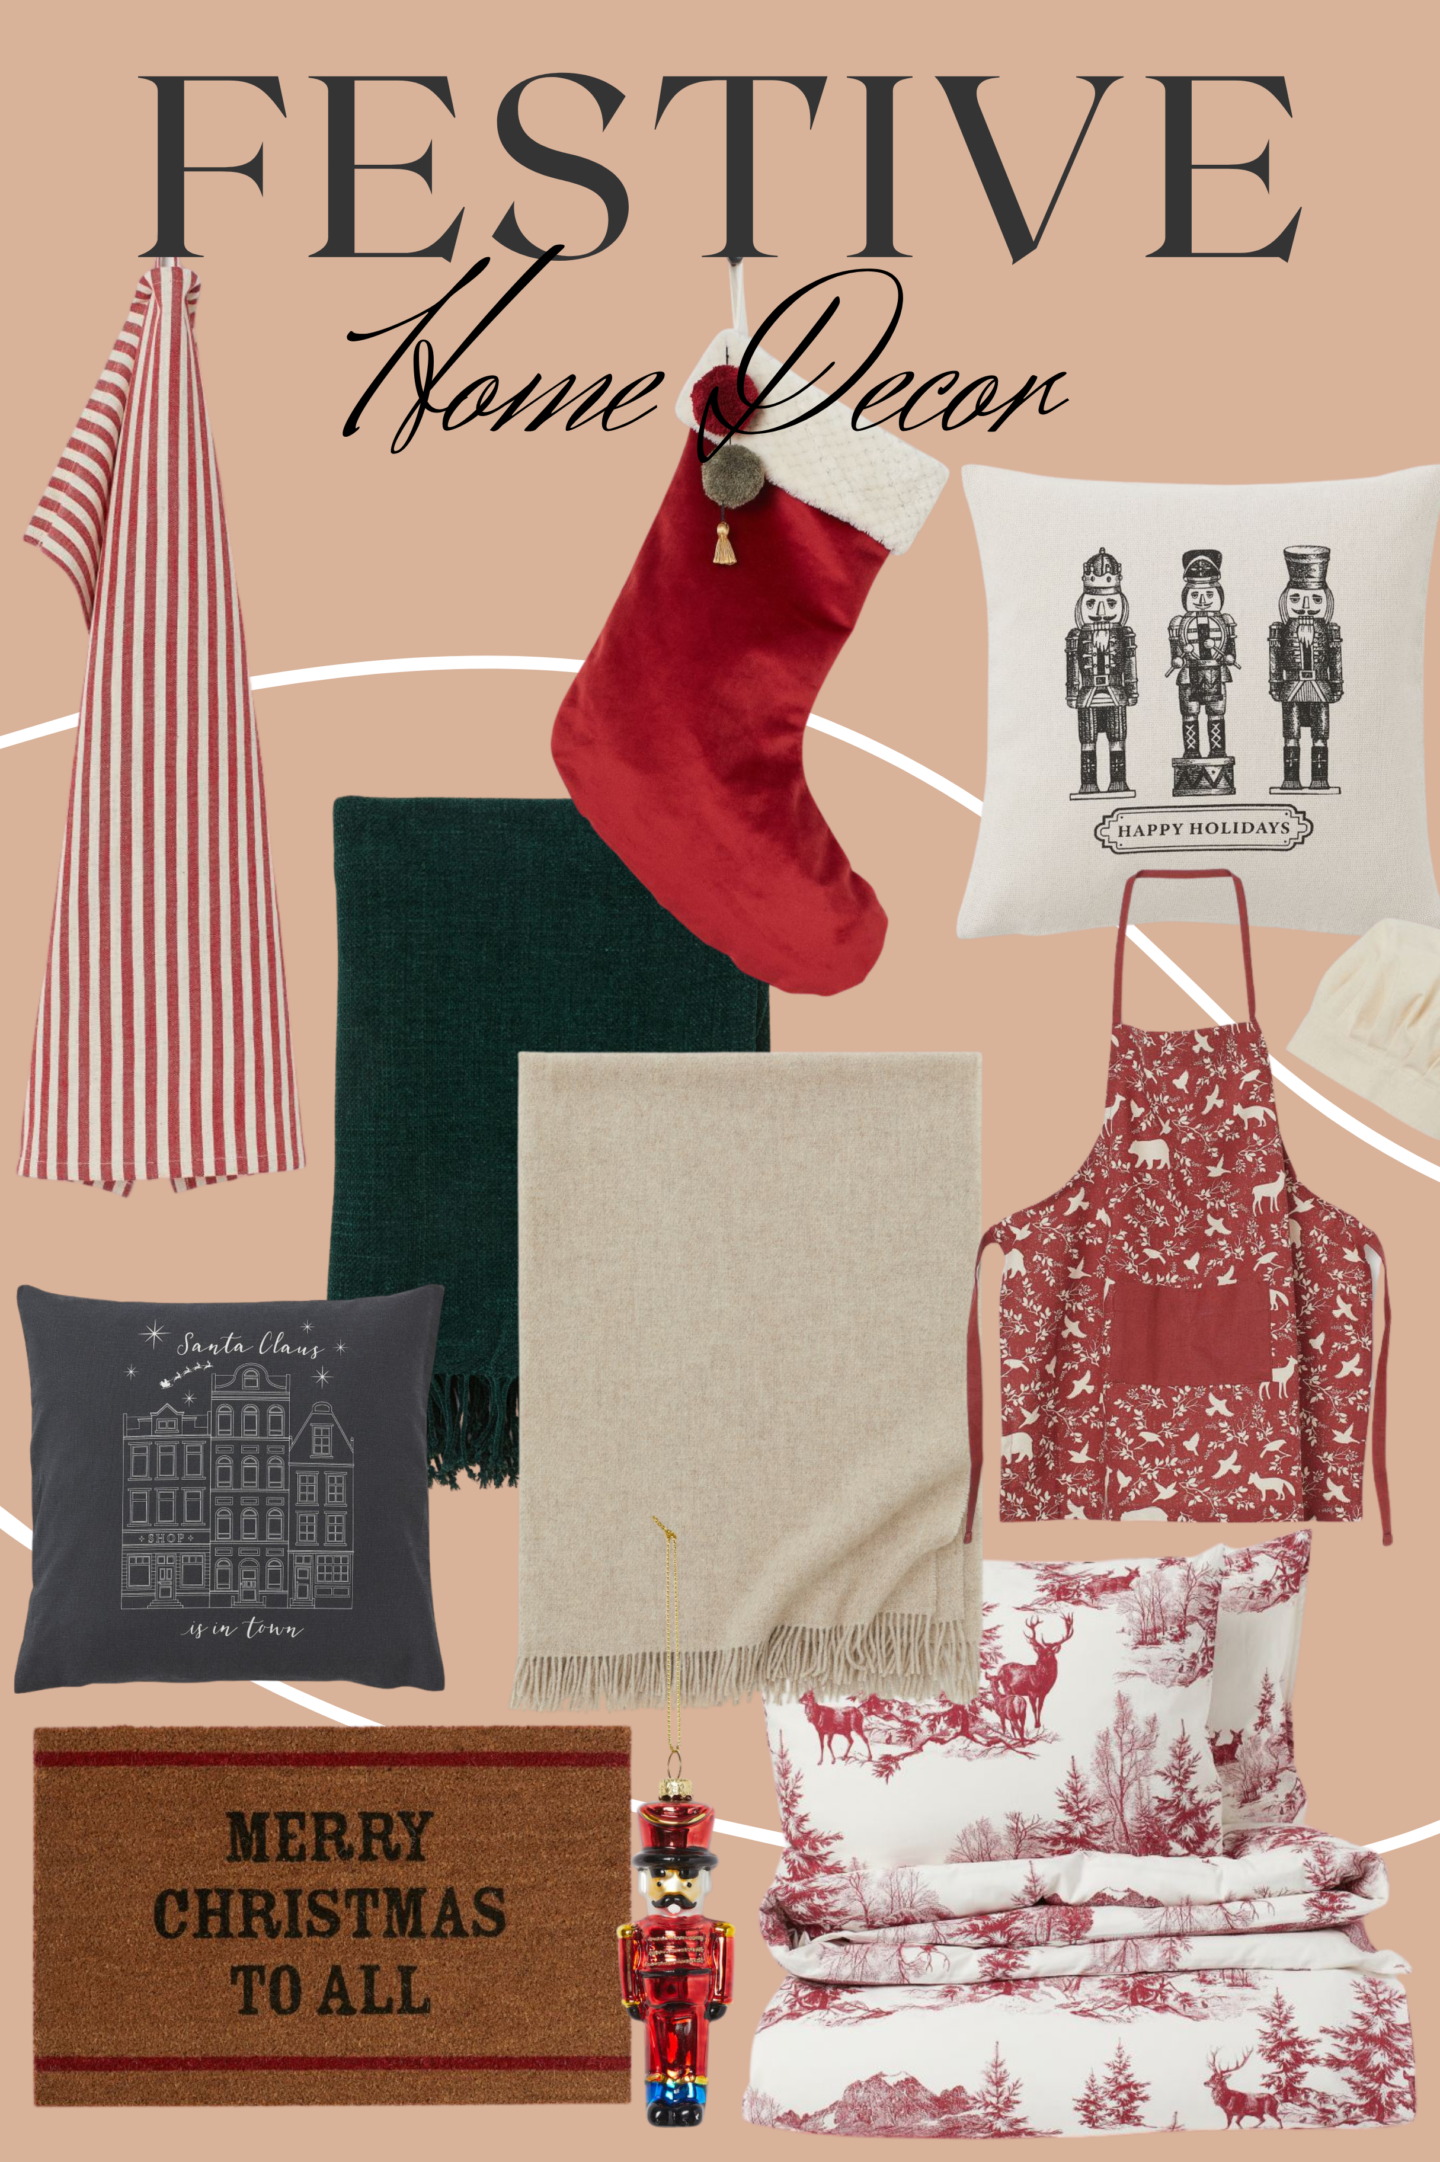 H&M Christmas Home Decor, Stockings, Cushions, Aprons, blacnkets